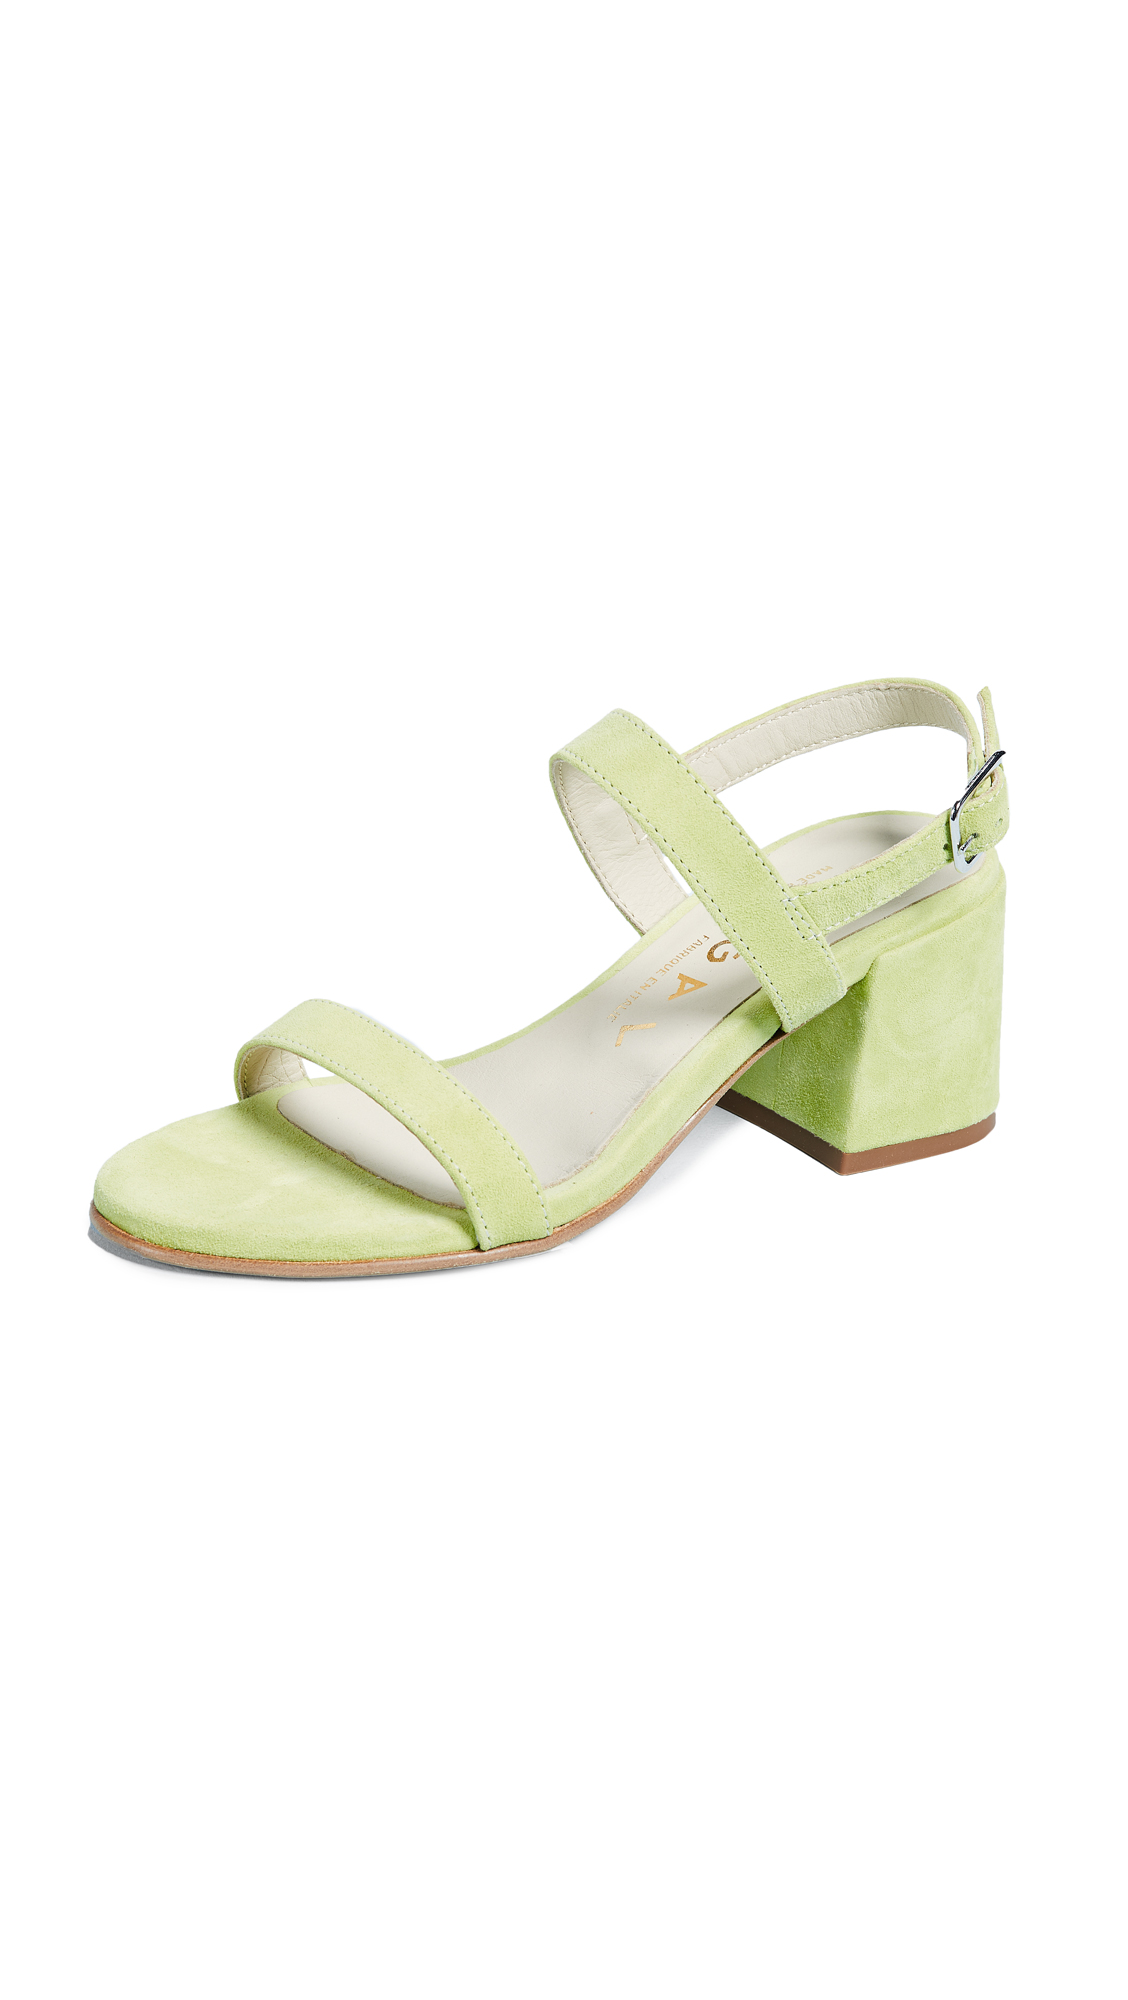 Ouigal Pearl Block Heel Sandals